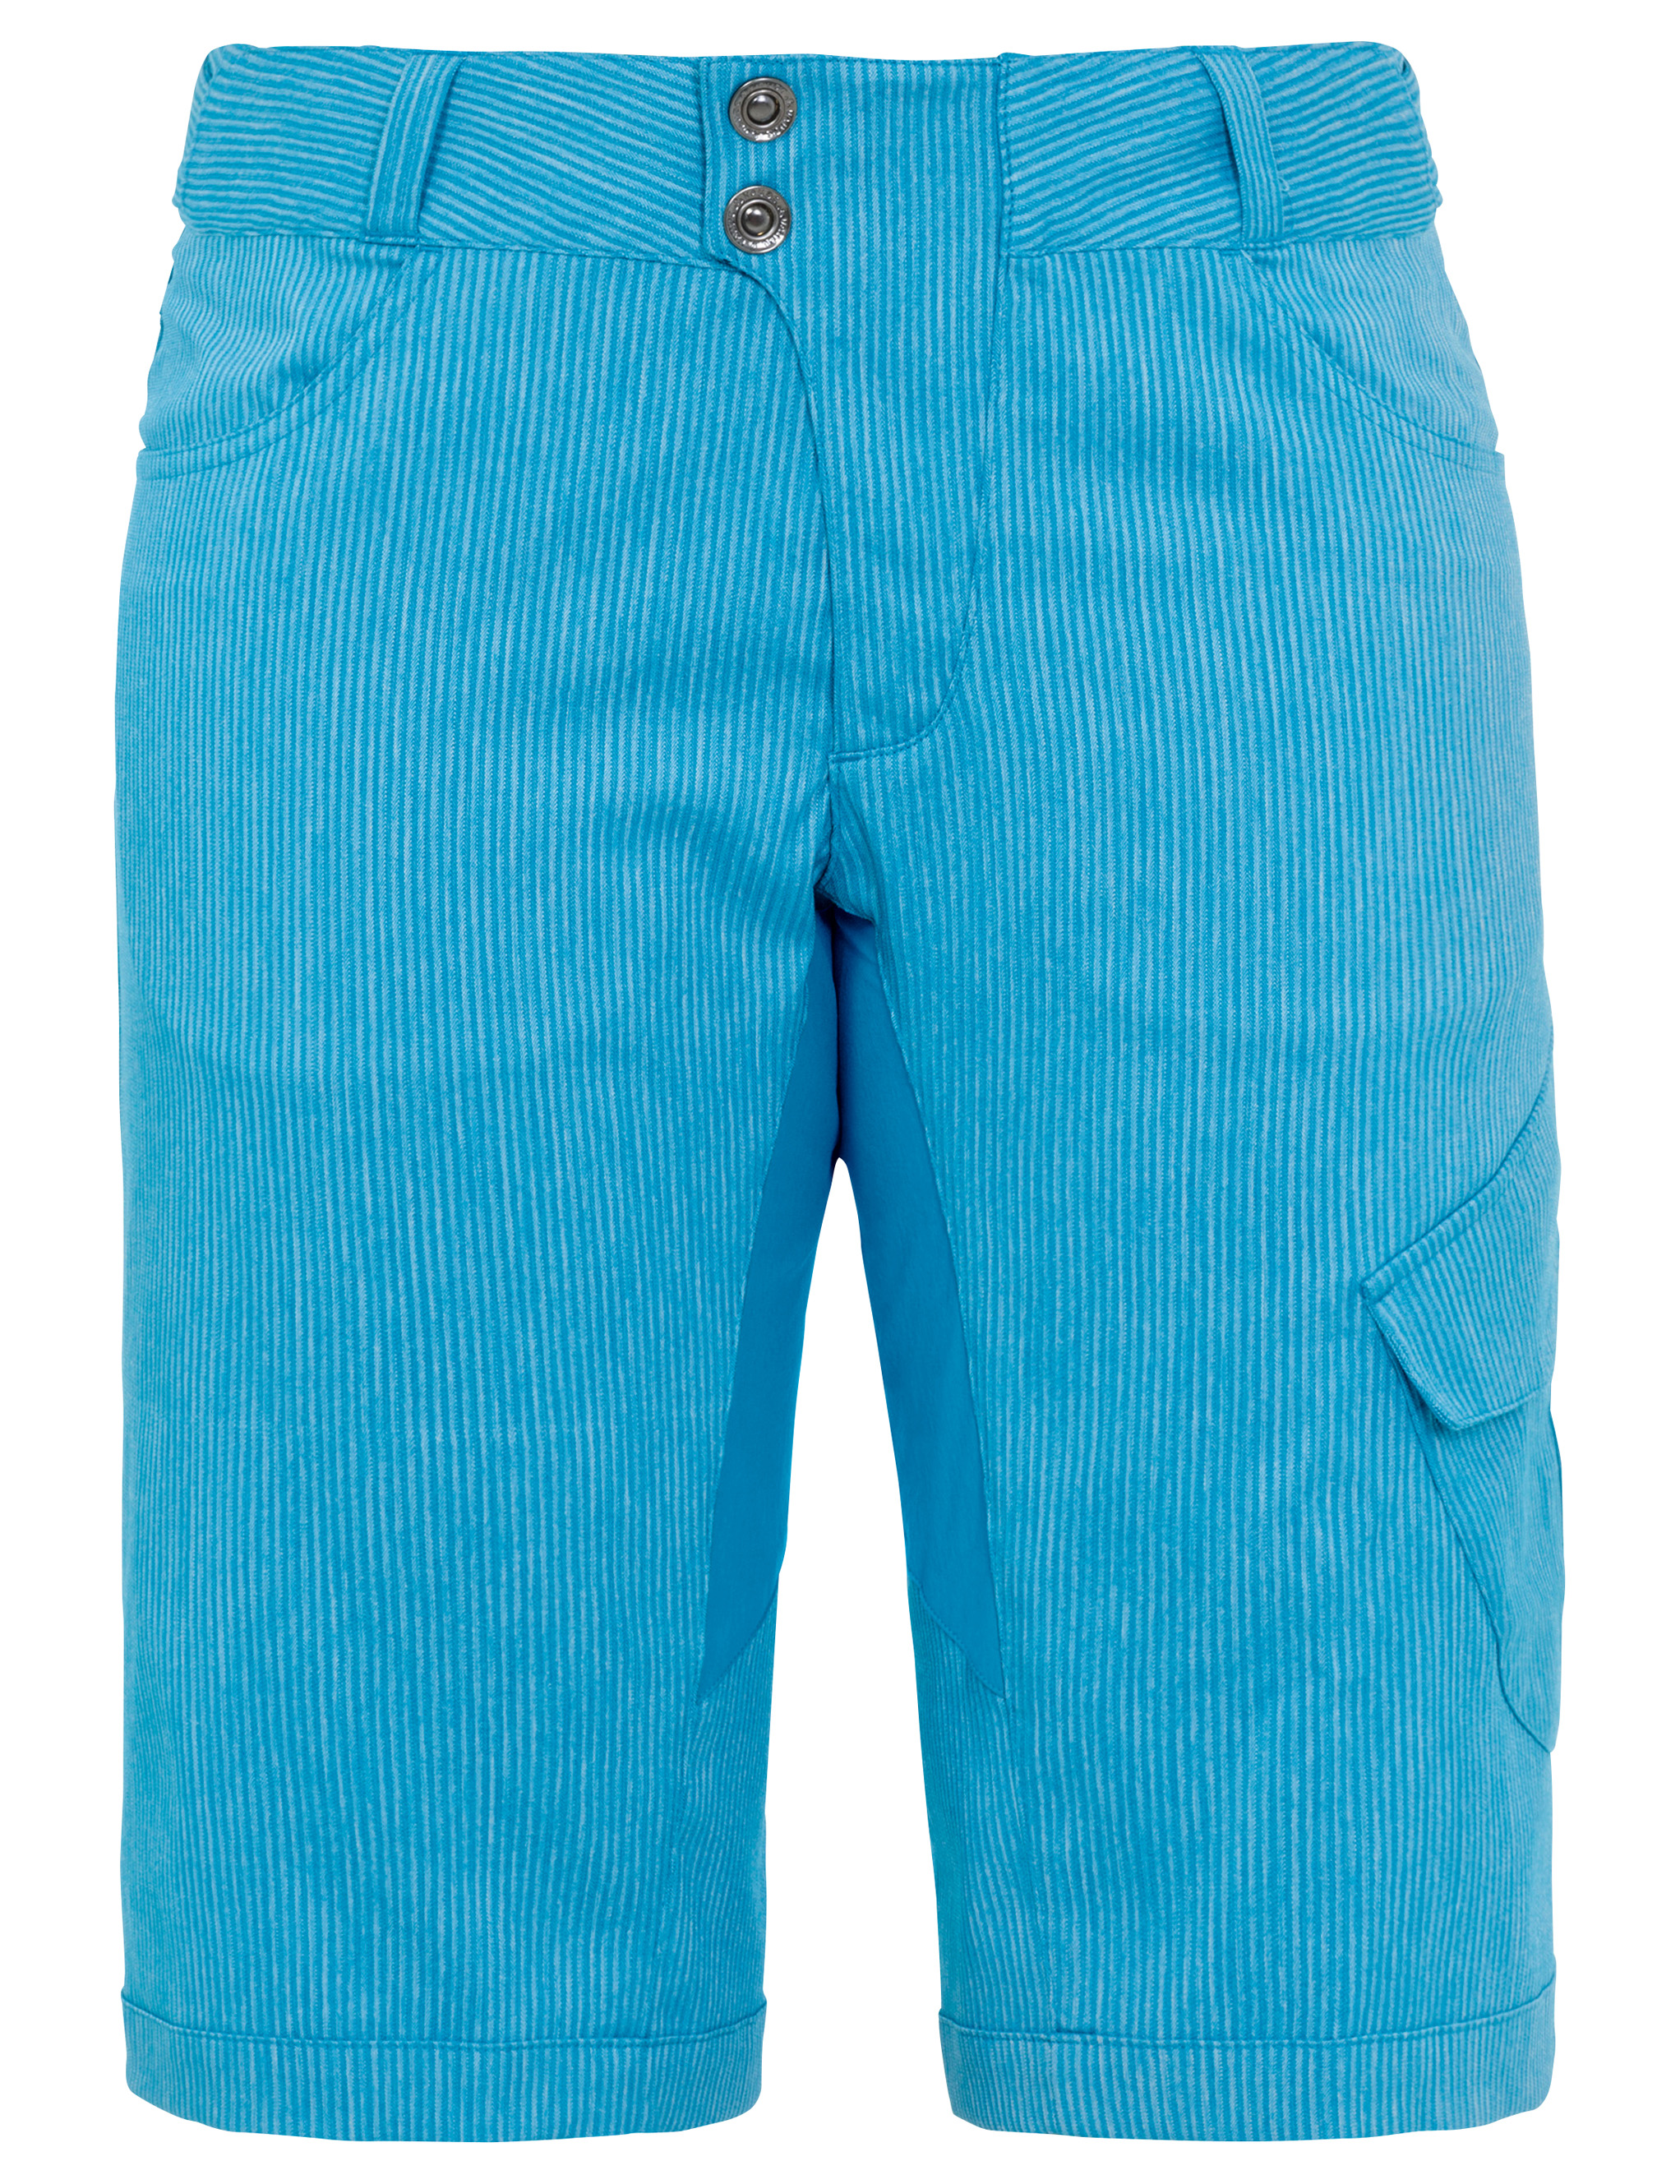 VAUDE Women´s Tremalzo Shorts spring blue Größe 36 - schneider-sports